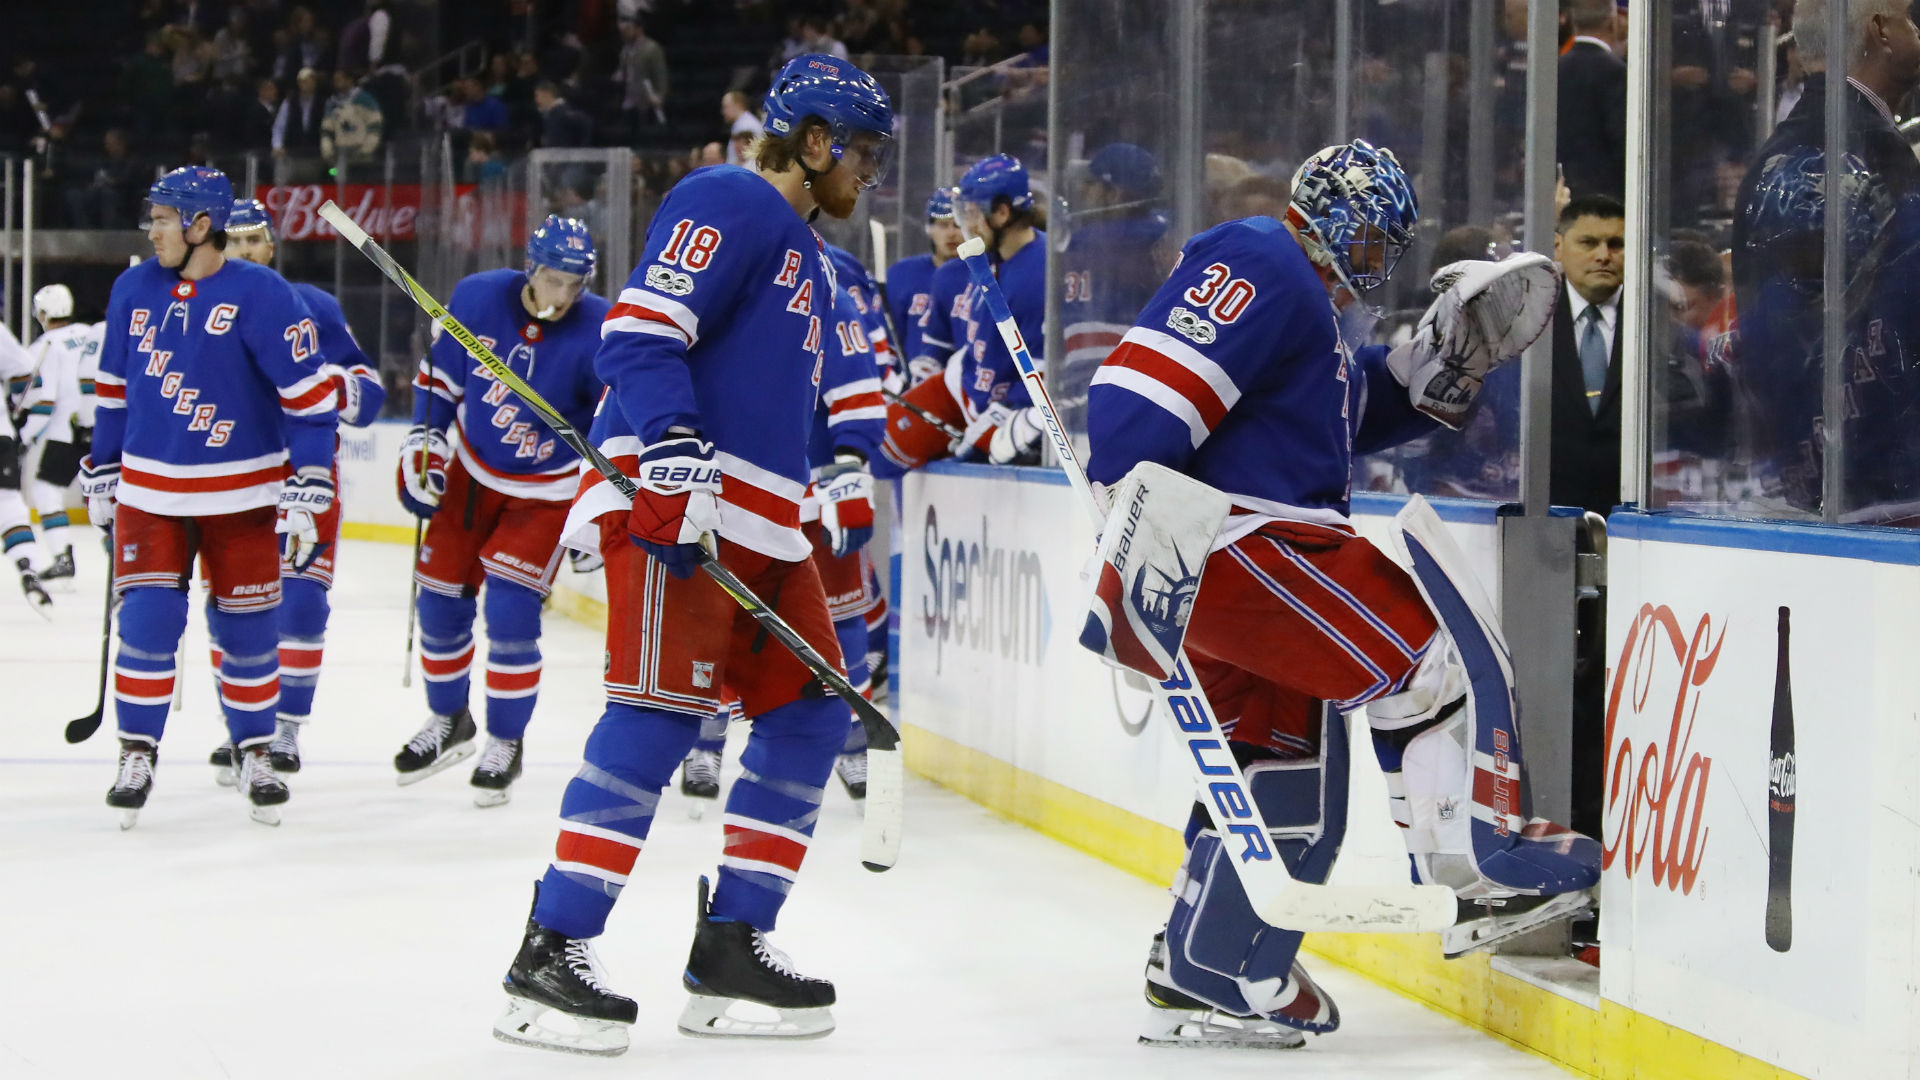 There is a glimmer of hope for struggling Rangers